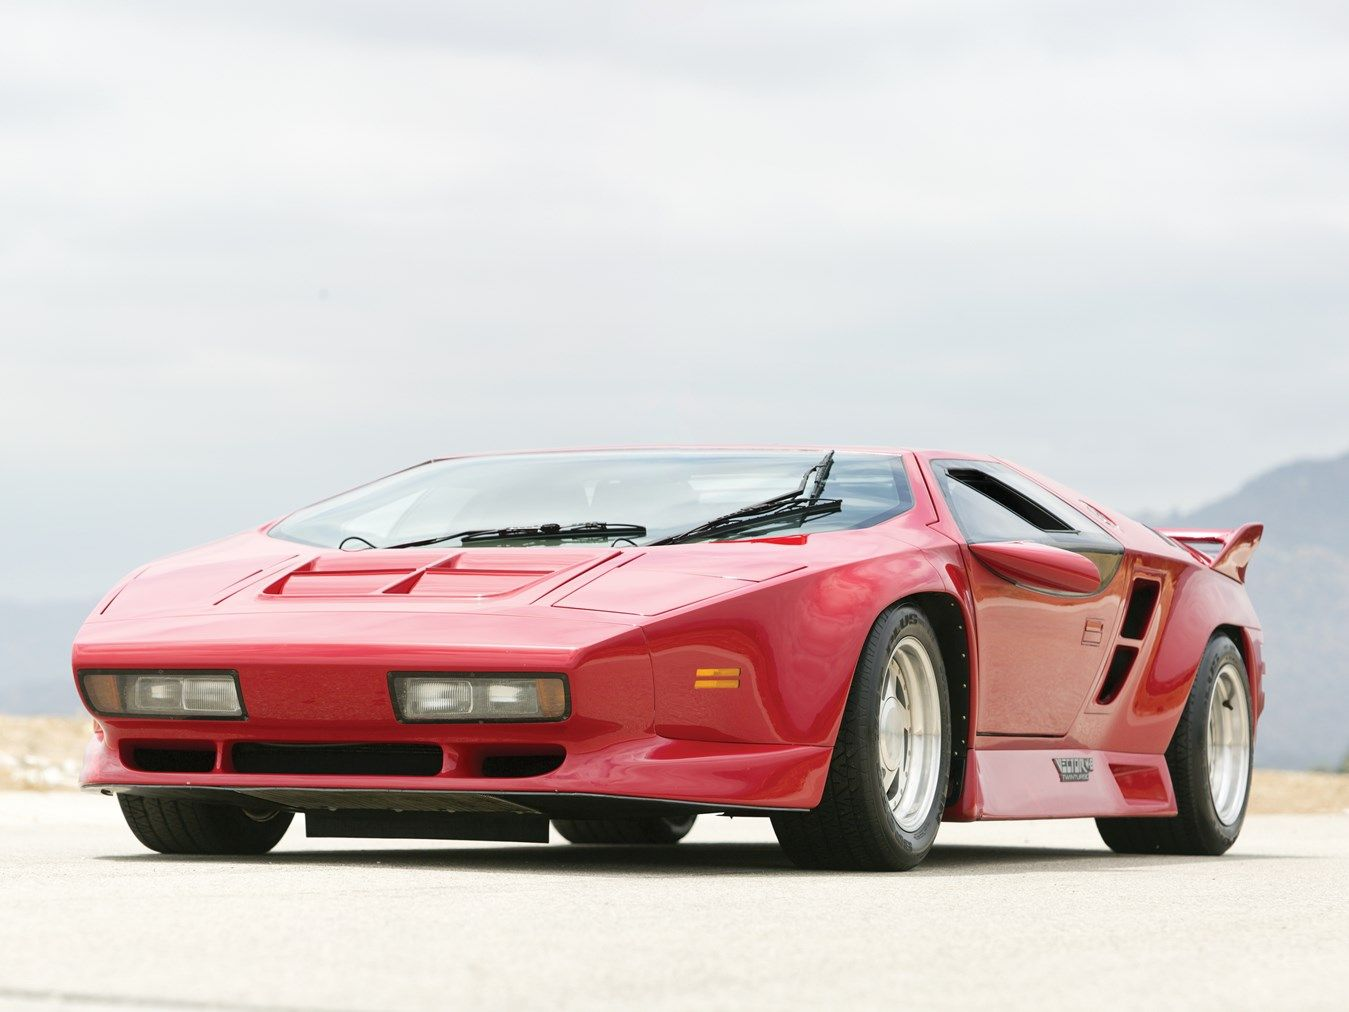 1992 Vector W8 Twin Turbo Super Cars Twin Turbo Fastest Production Cars